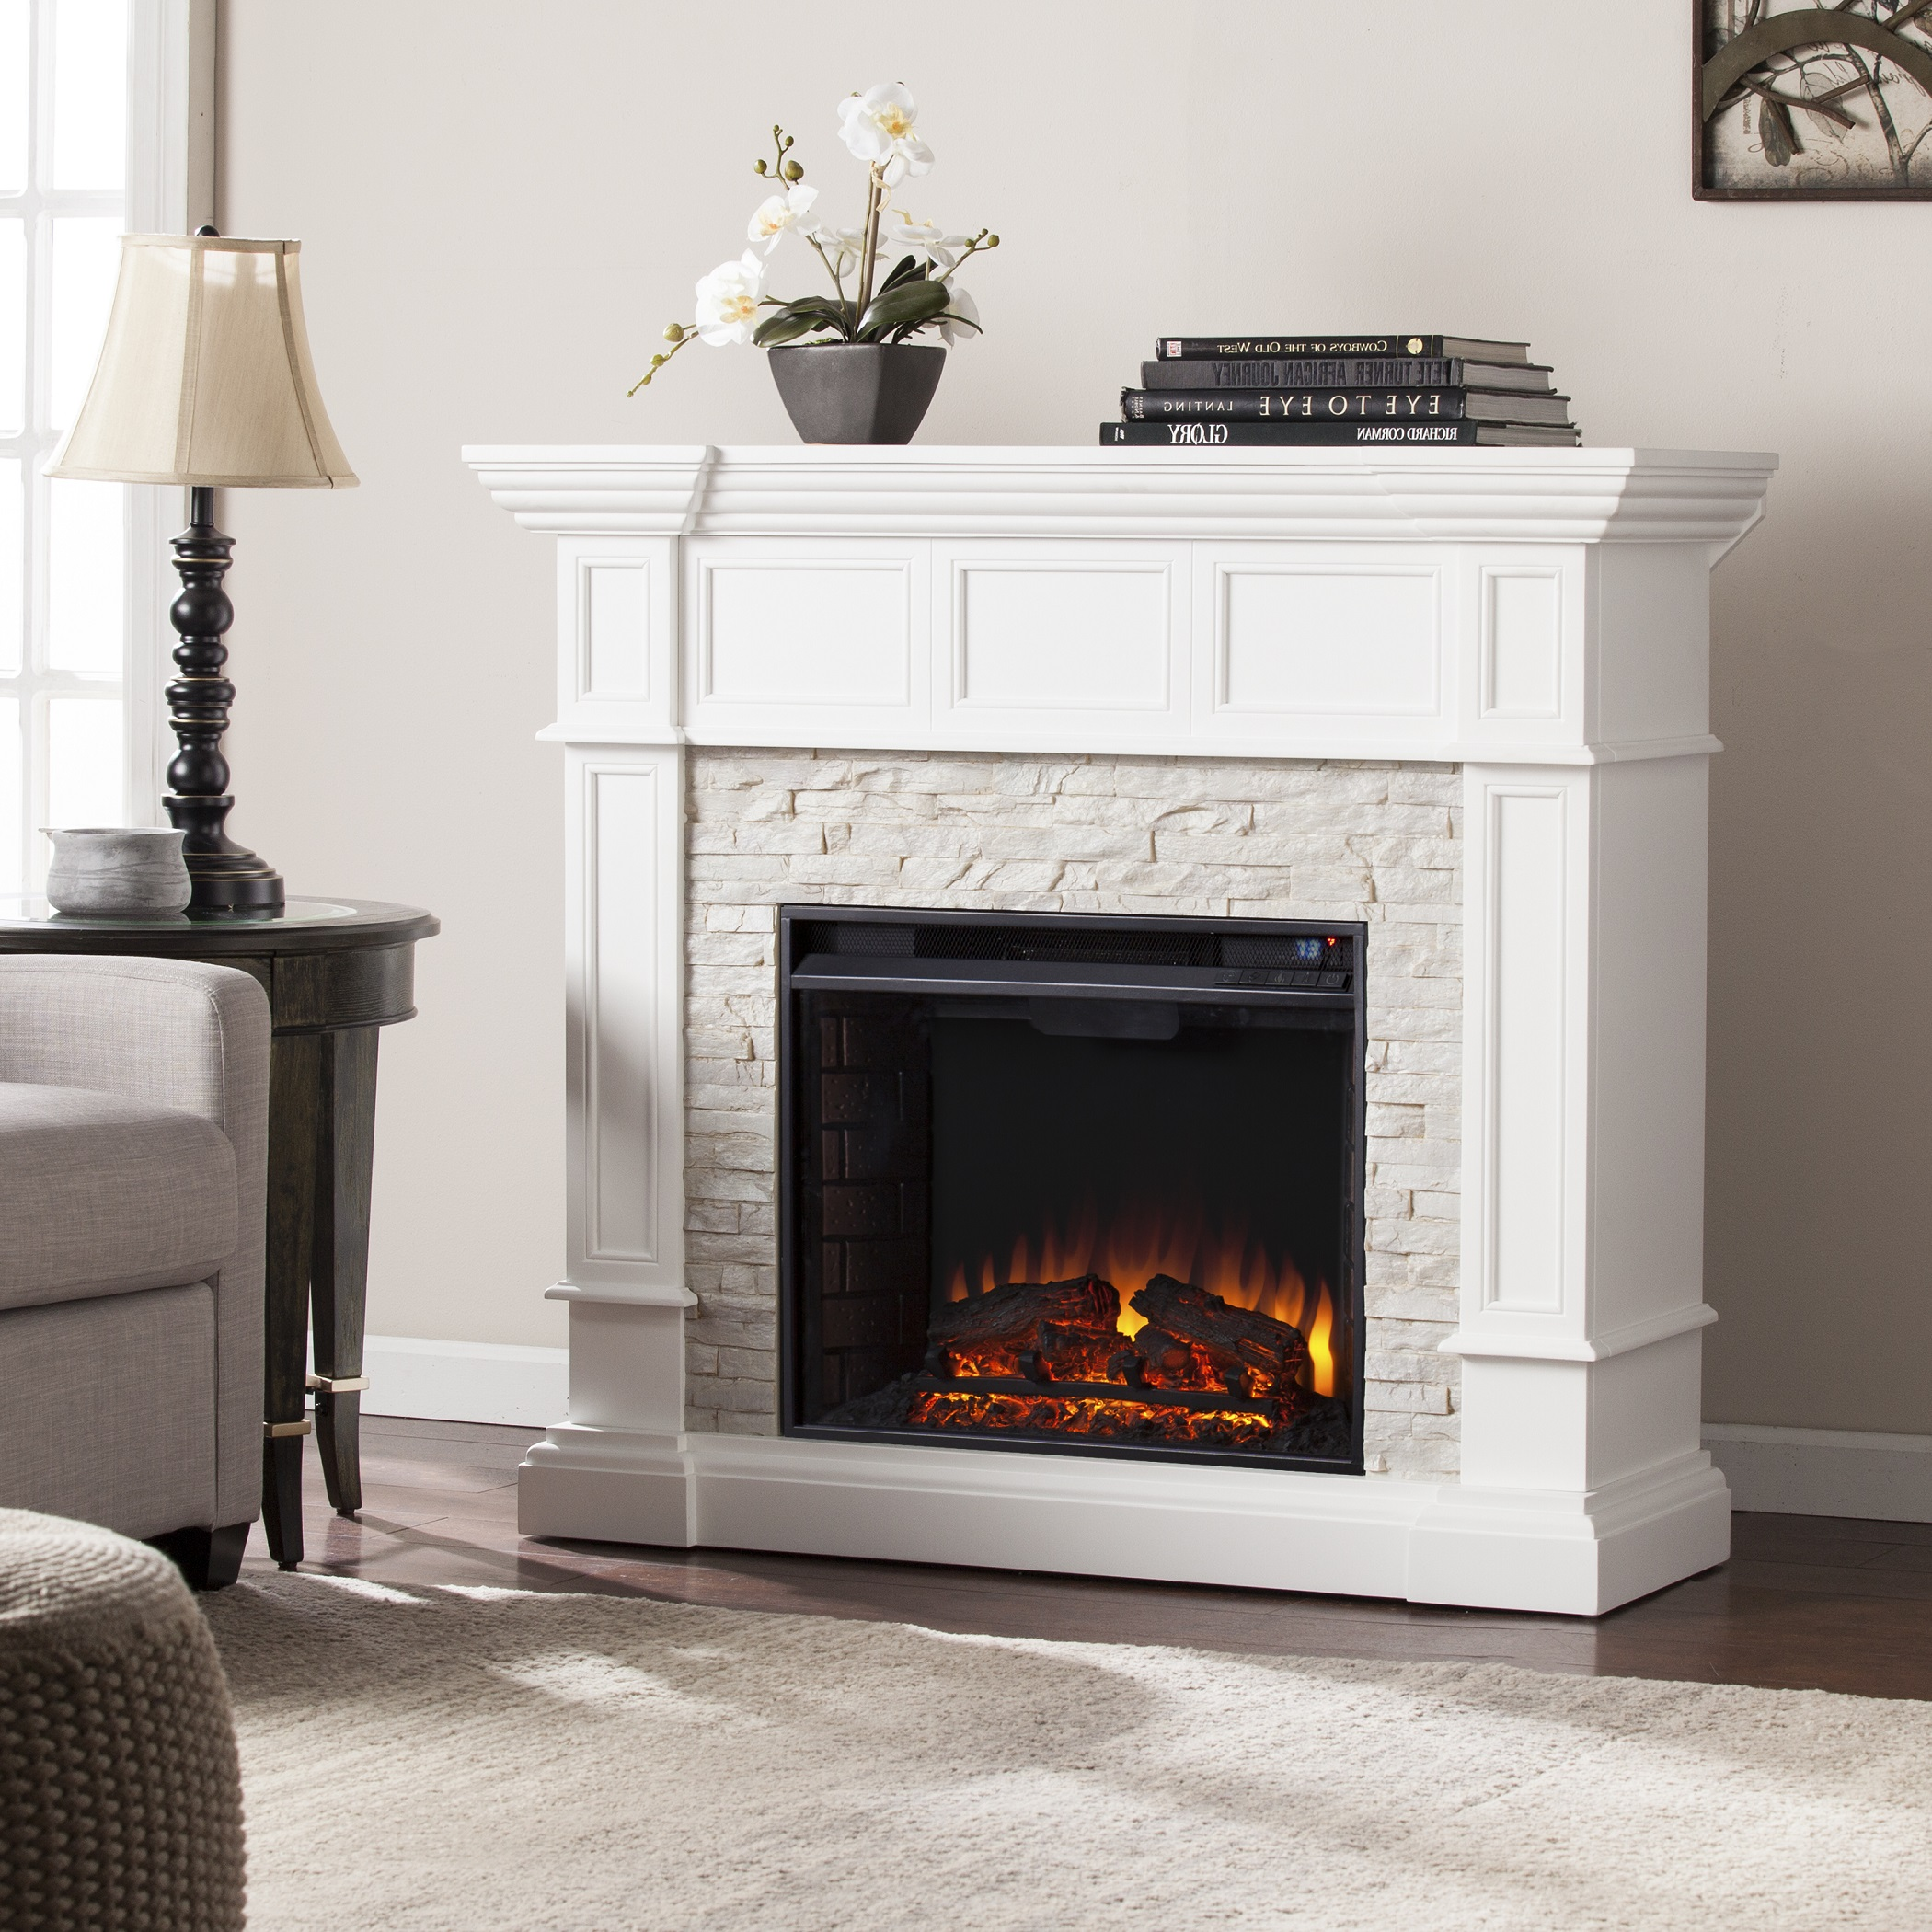 Rustic cottage chic comes to life in this crisp white electric fireplace. Dimensional woodwork adorns the pilasters